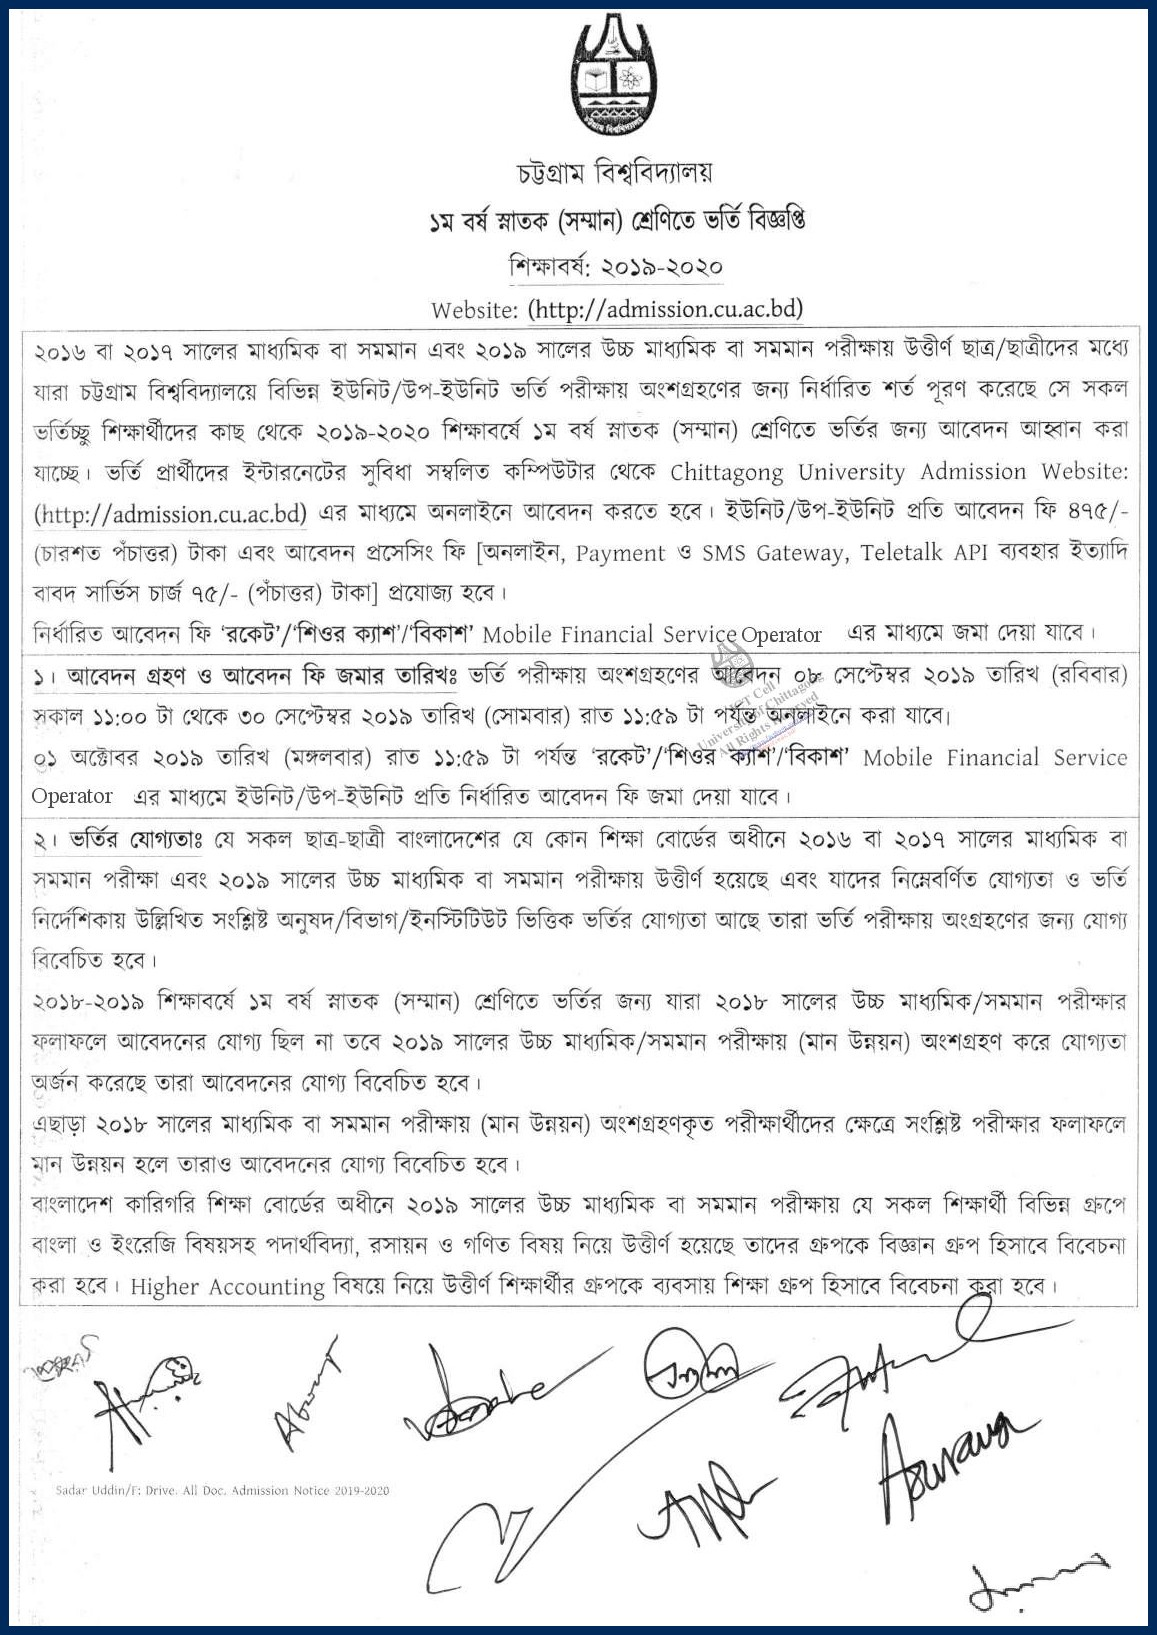 chittagong university admission circular 2019-20